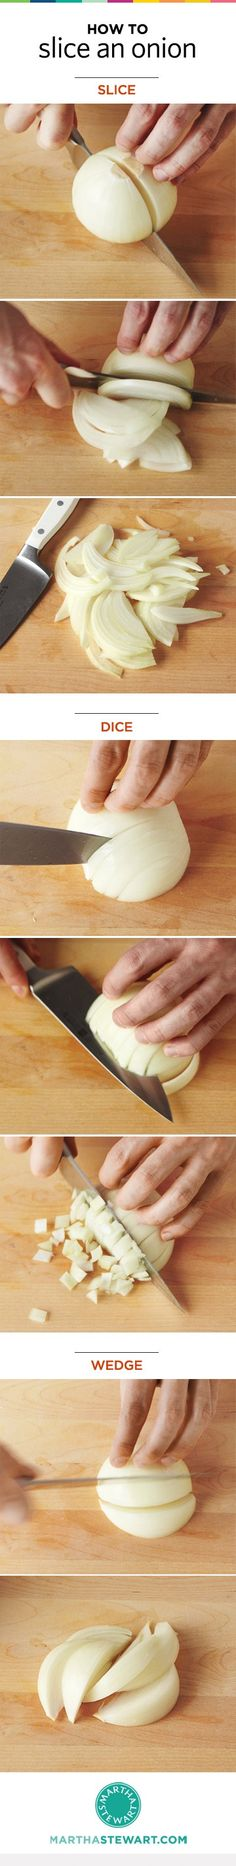 How To Slice an Onion